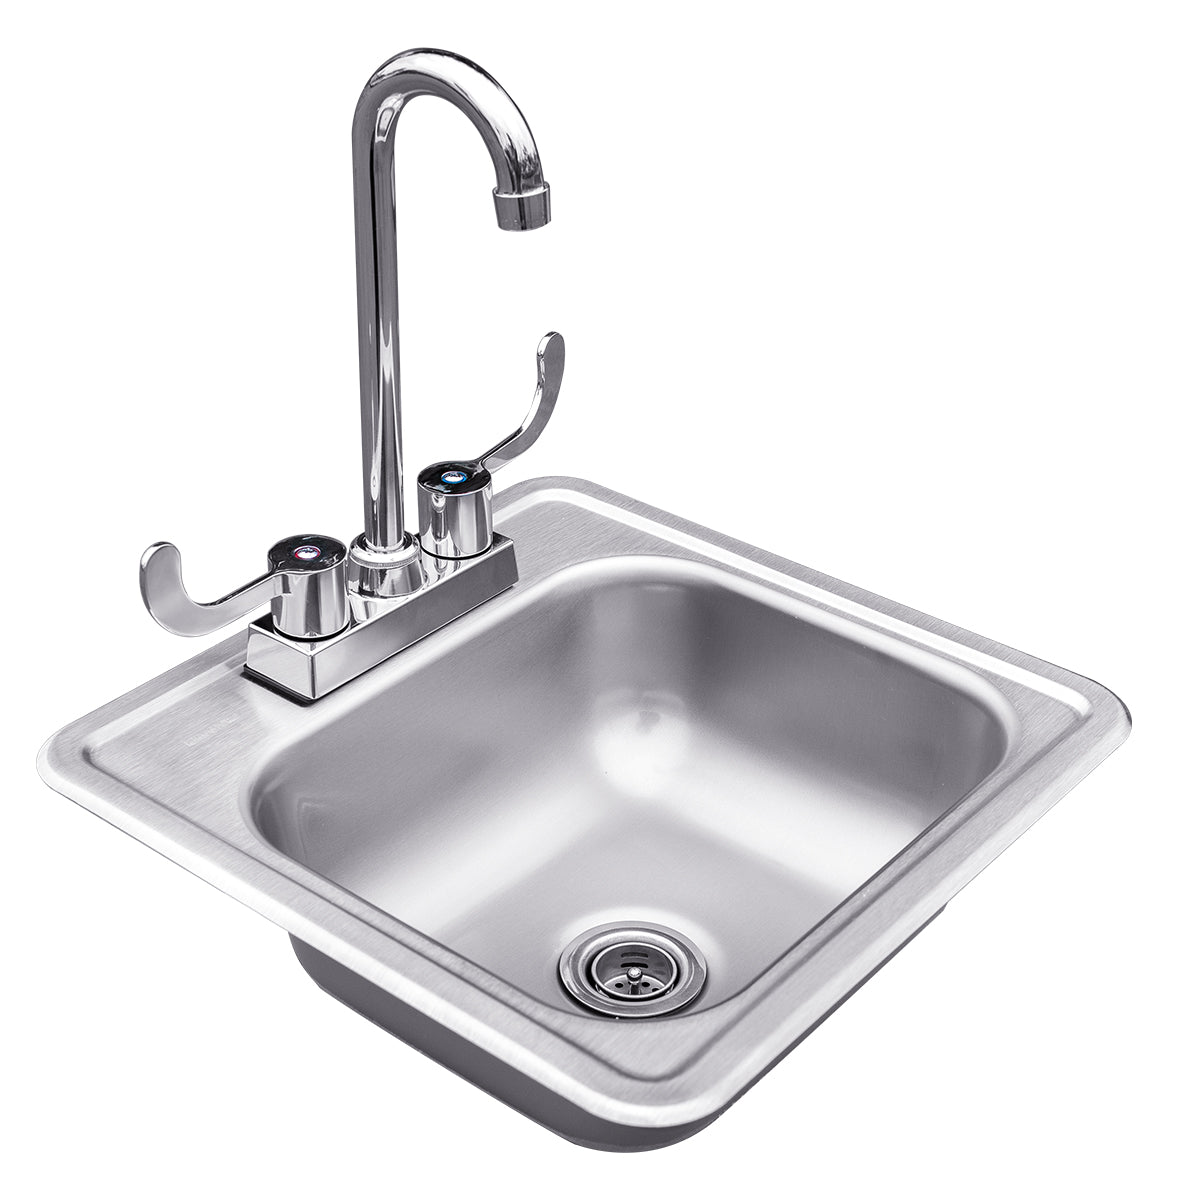 "Summerset  Sink, Drop In - 15"" x 15"" Stainless Steel with Hot and Cold Faucet-SSNK-15D"